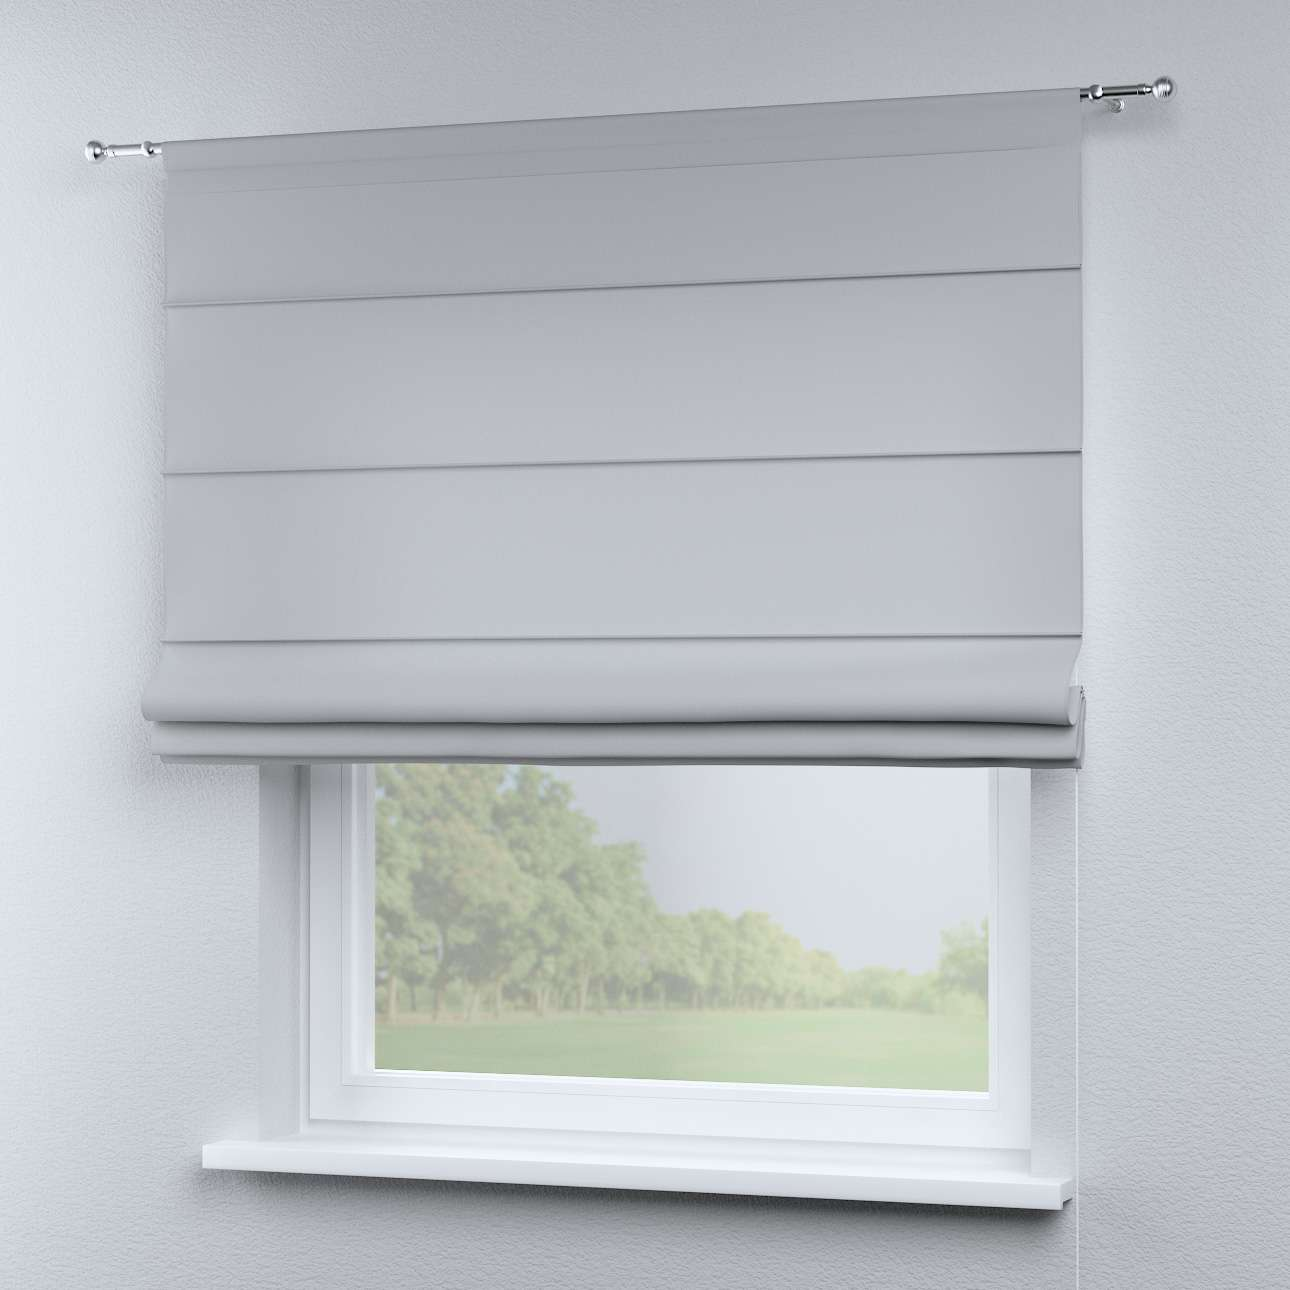 Torino Slot Roman Blind Grey With A Hint Of Blue 142 40